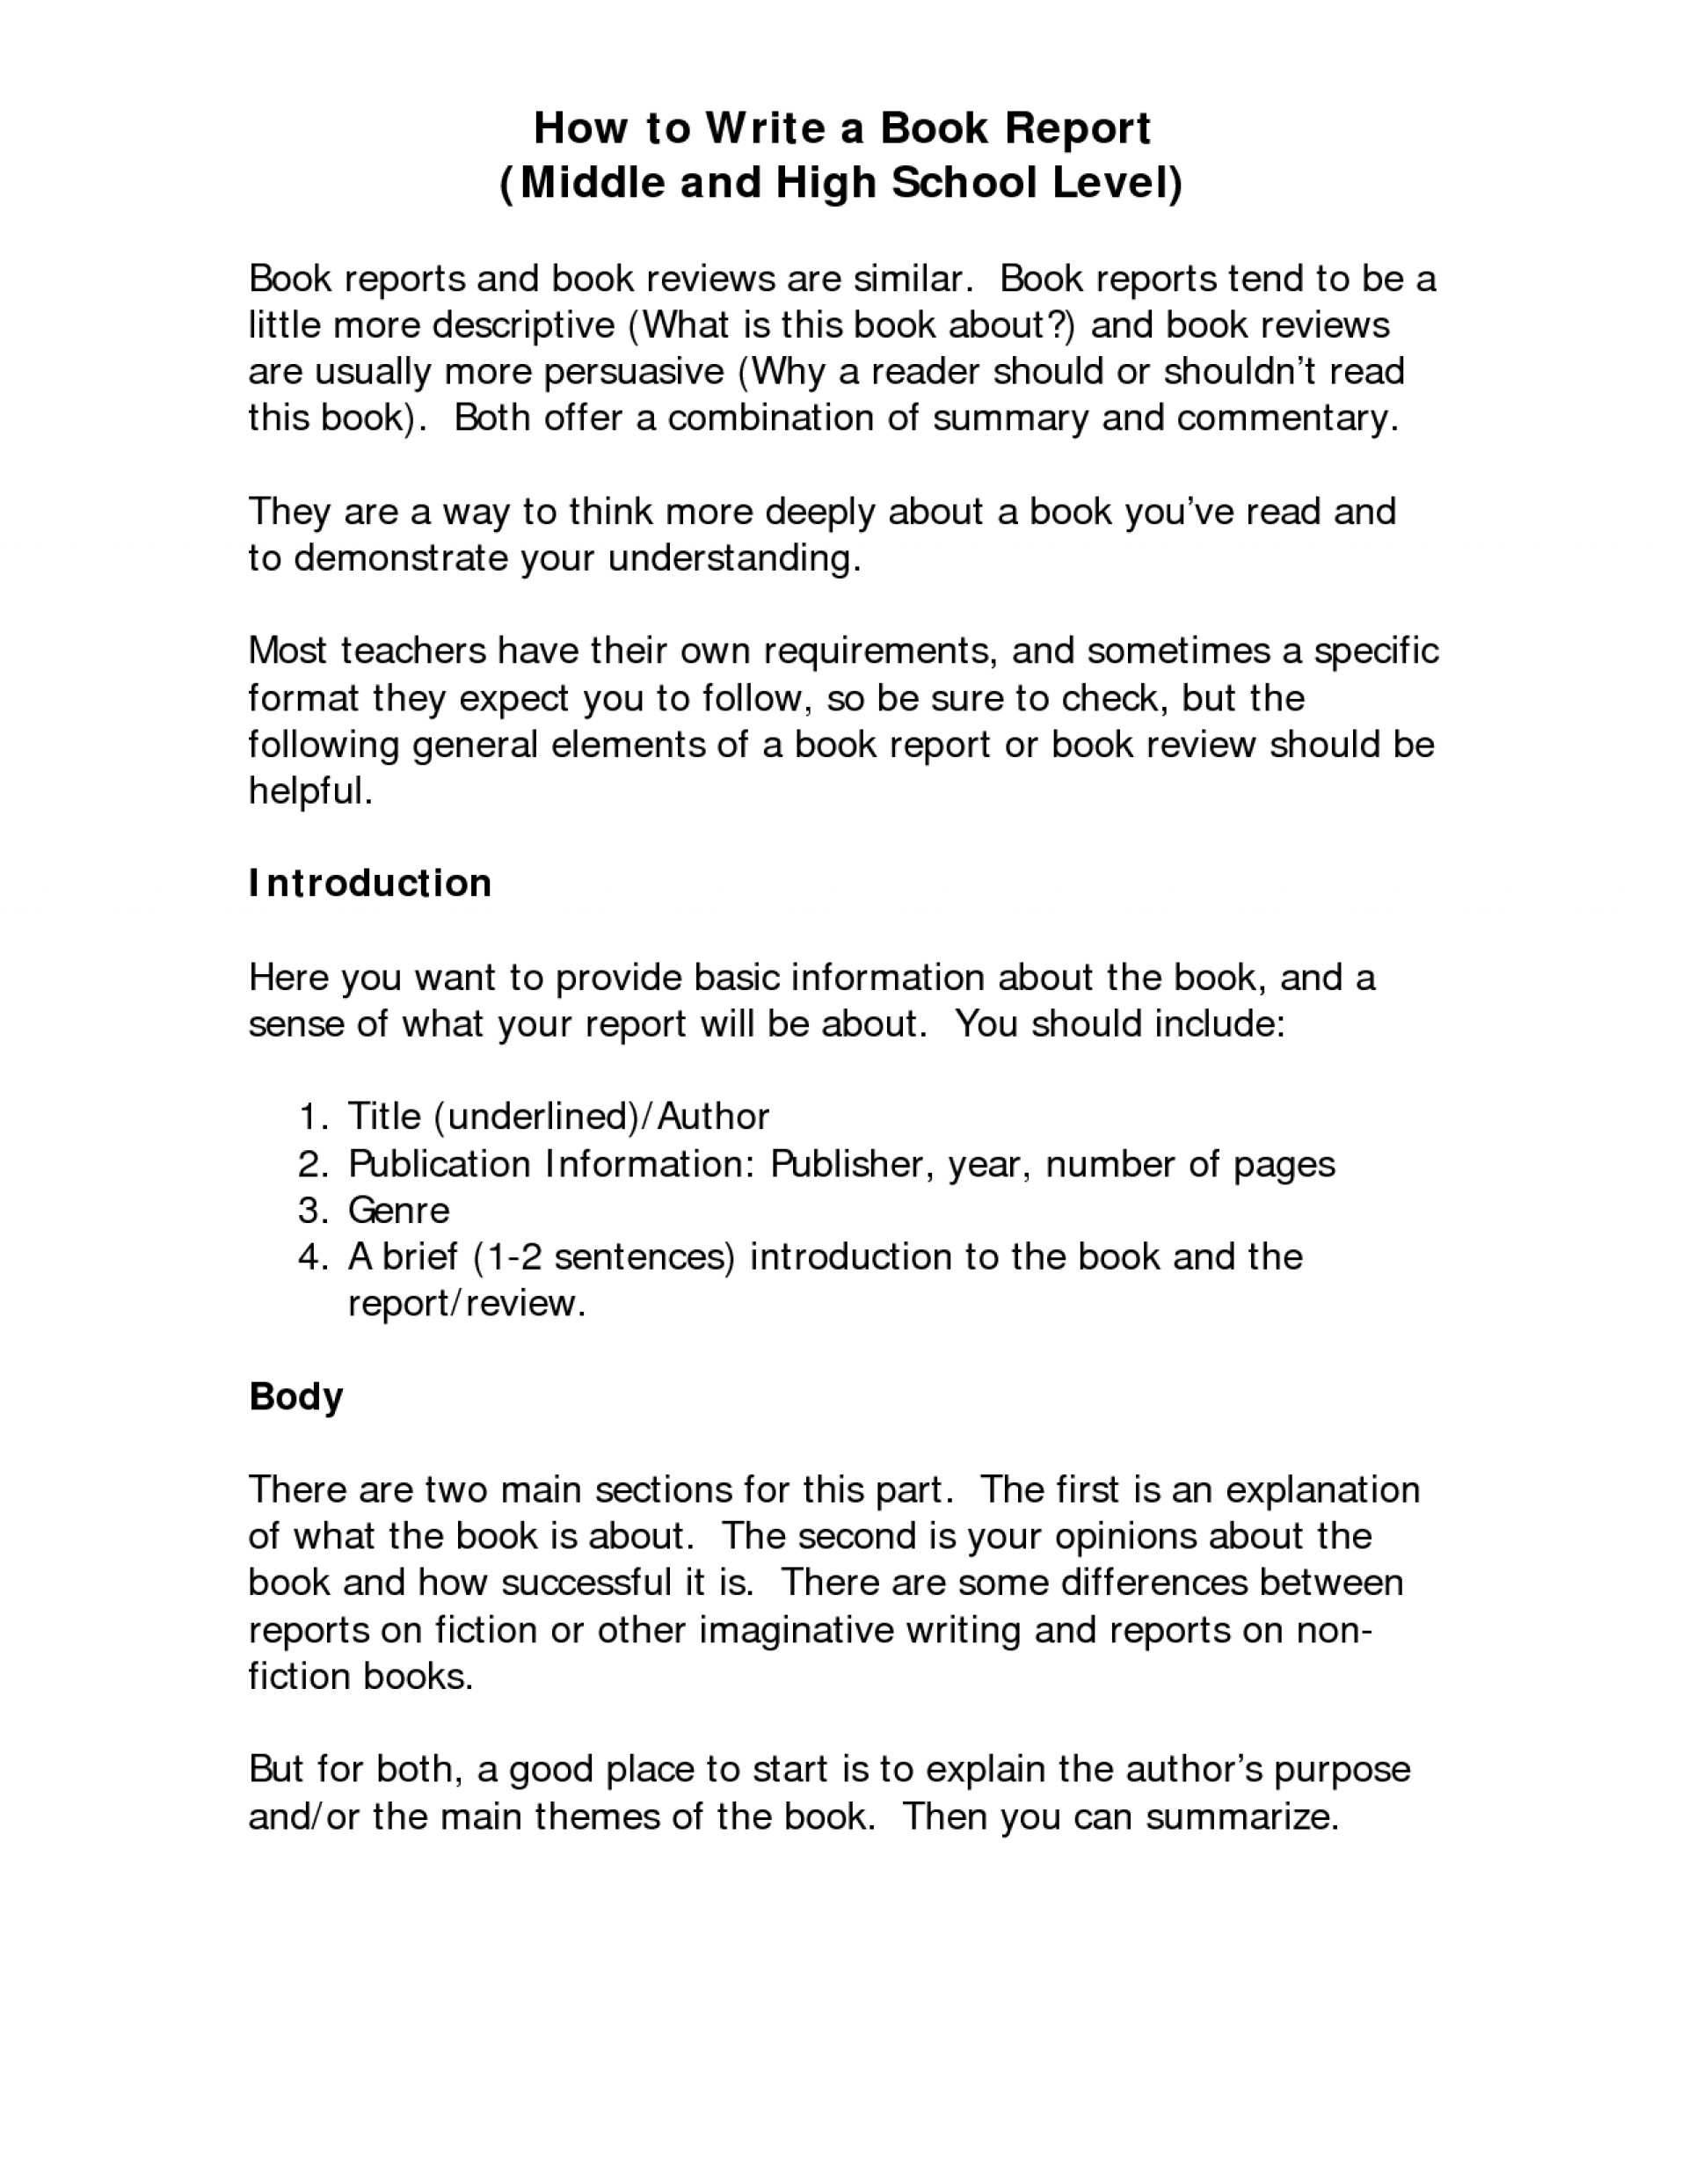 001 How To Write Book Report For High School The Canterbury